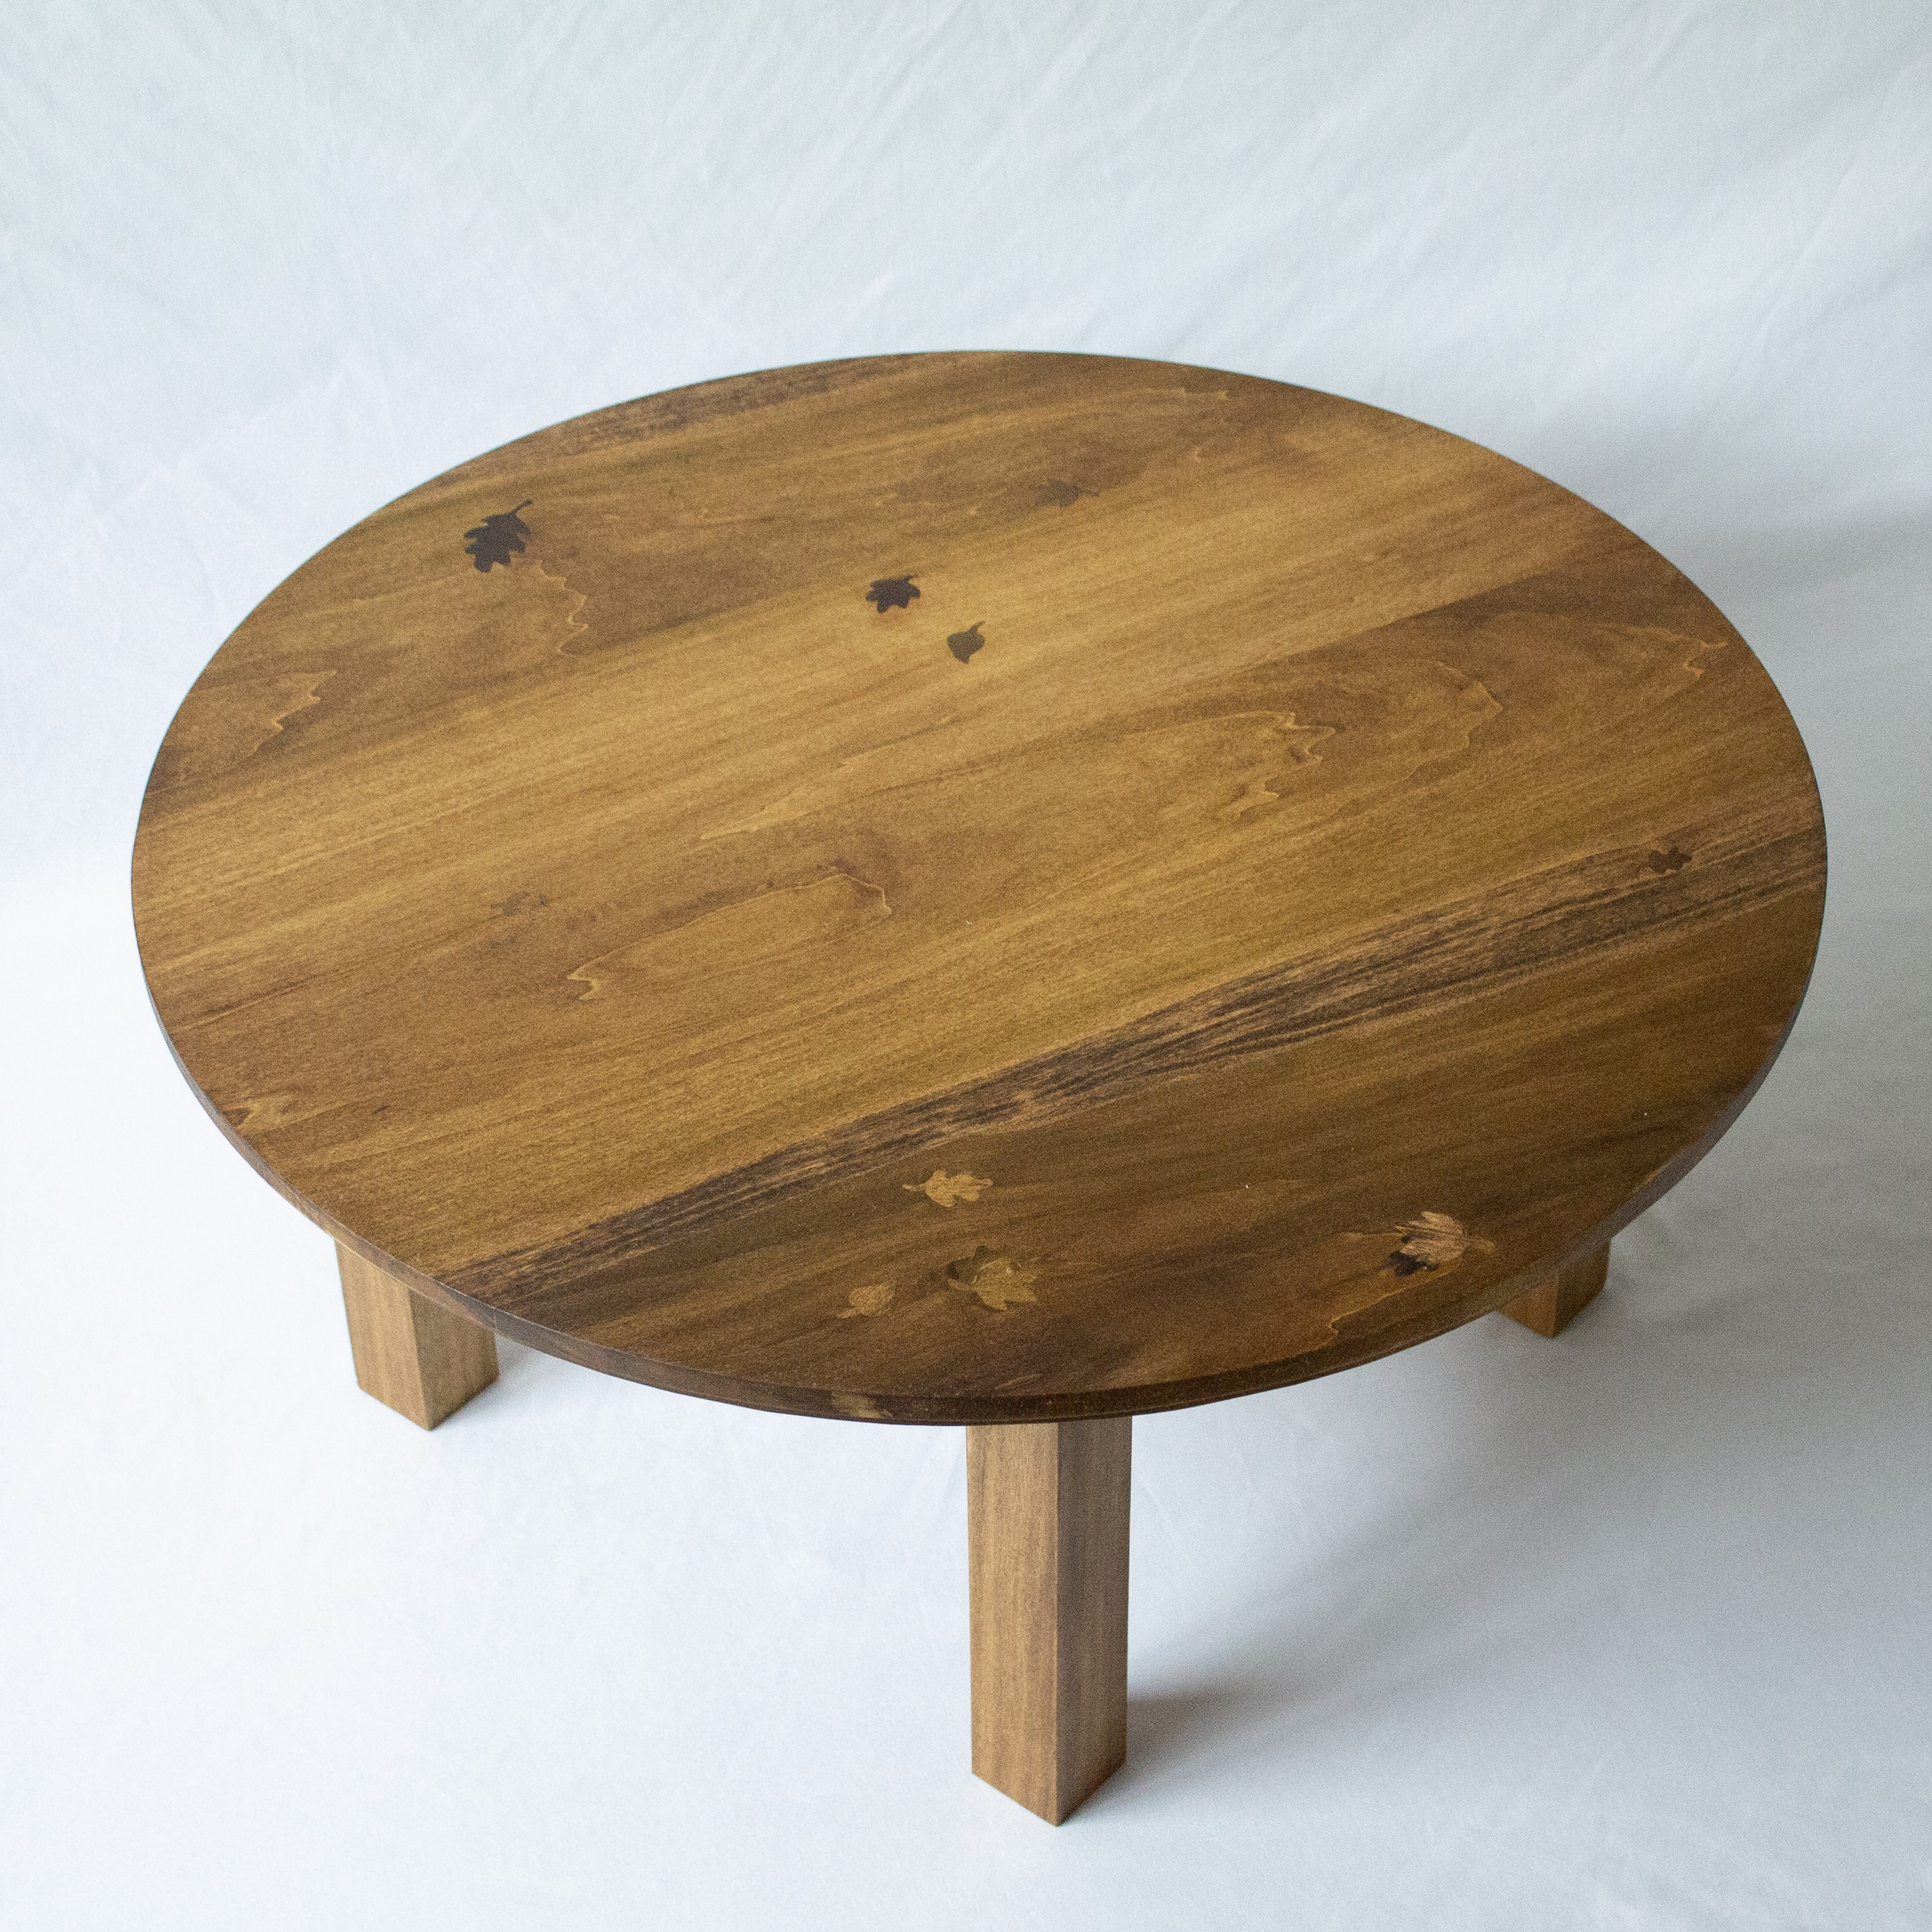 A dark walnut stained low round coffee table made of poplar wood. Reminiscent of traditional Korean low tables, it is perfect for sitting at at just 14 inches tall, while also sporting carvings on the face of each apron. The table-top has 12 leaf poplar w